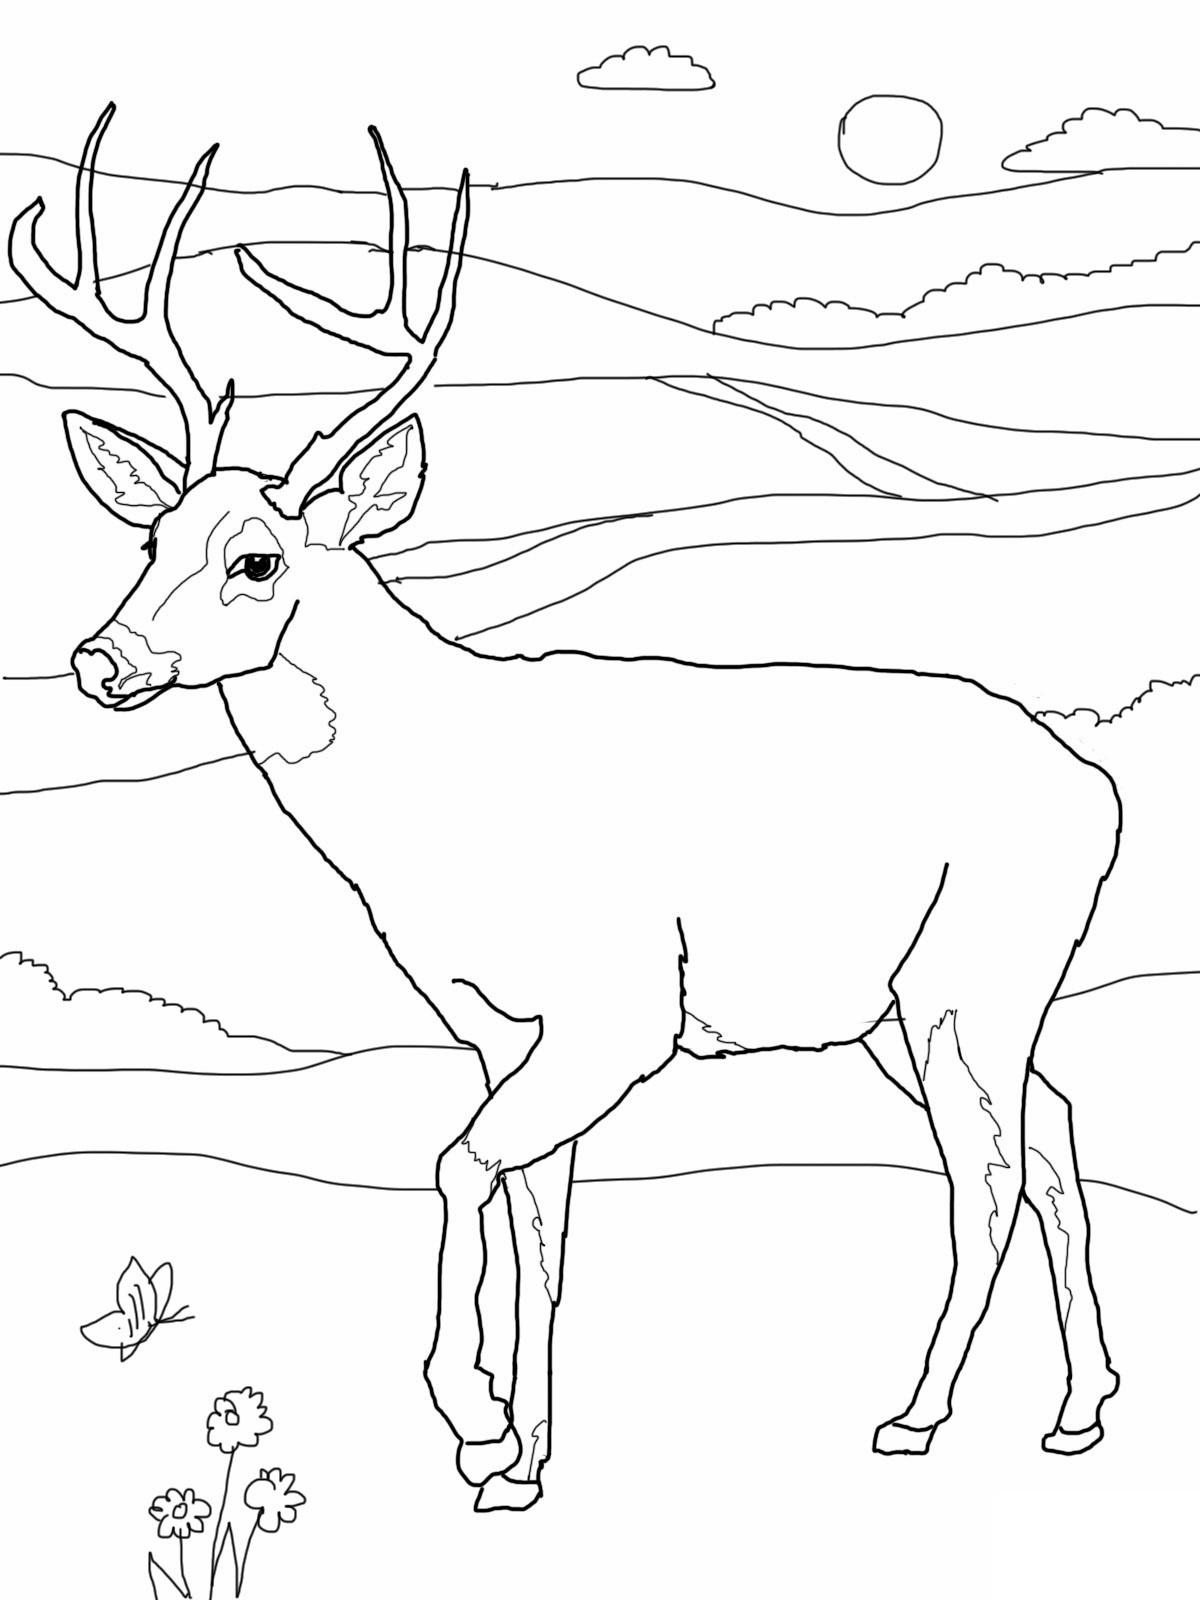 7 Images of Deer Coloring Pages Printable